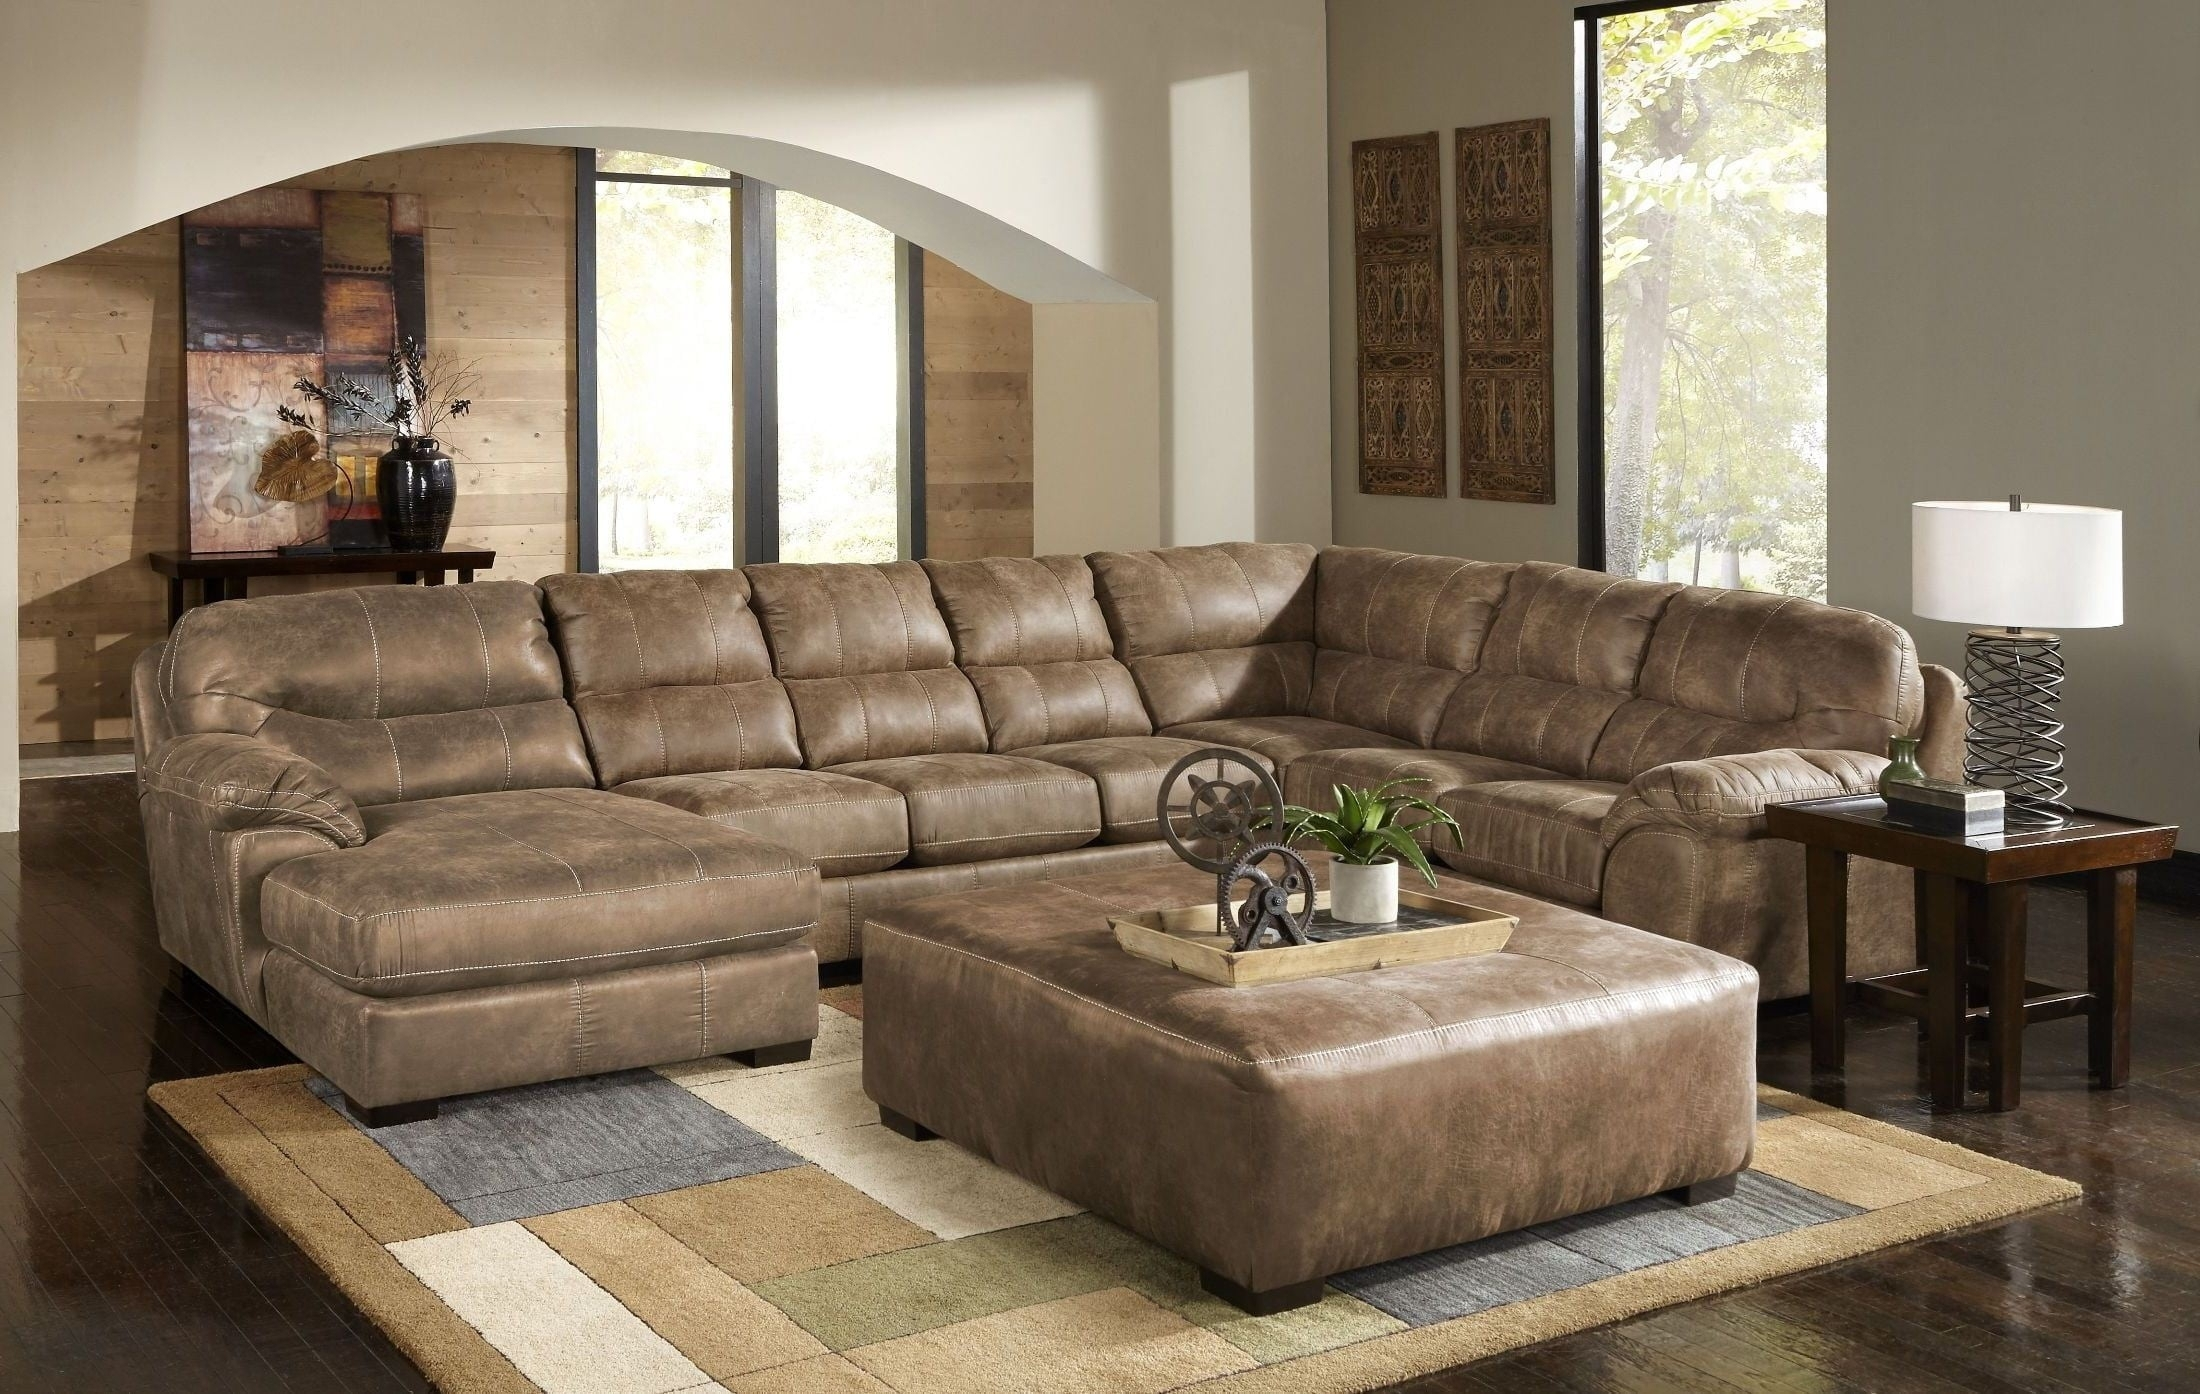 Grant Silt Laf Chaise Sectional, 4453 75 122749302749, Jackson For Avery 2 Piece Sectionals With Raf Armless Chaise (Photo 9 of 25)